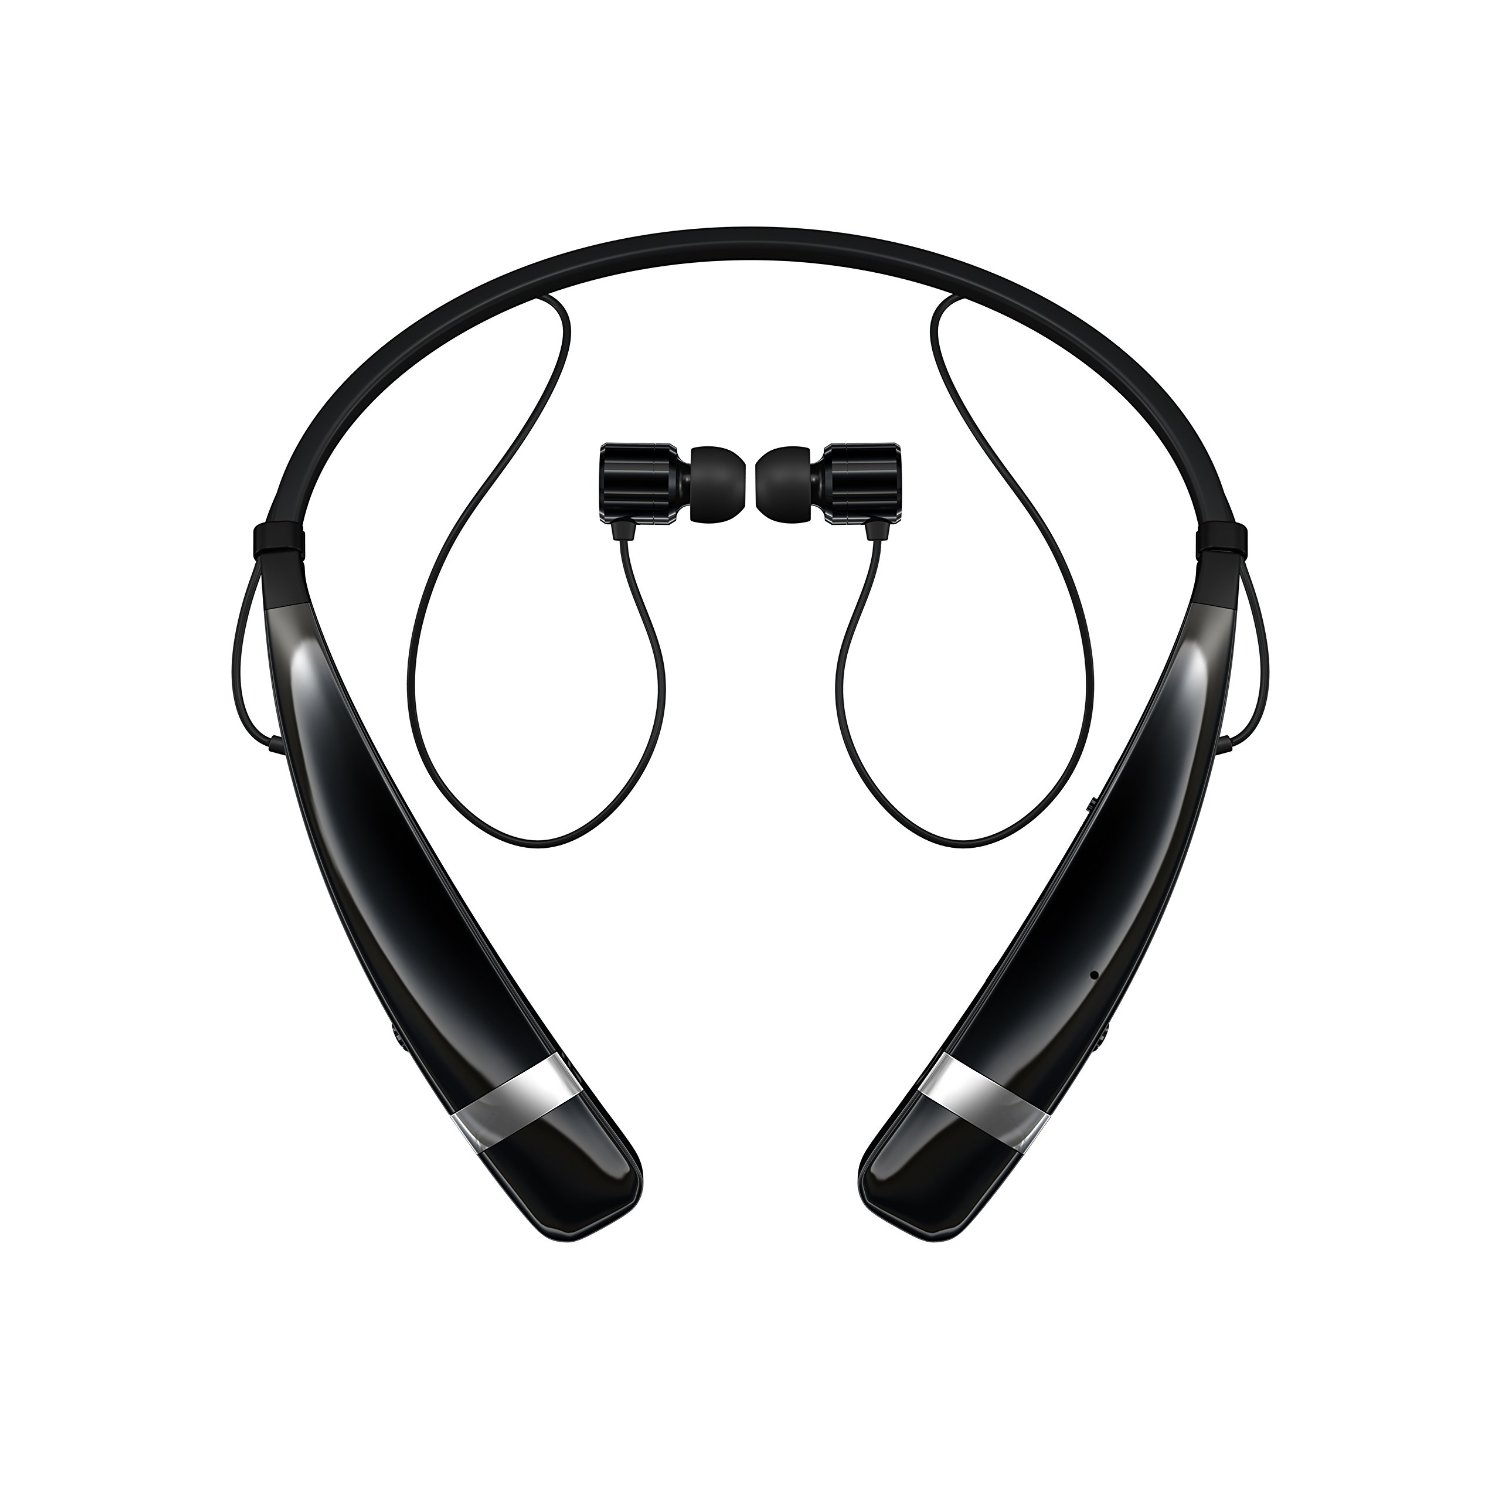 LG Tone Pro HBS-760 Bluetooth Wireless Stereo Headset [Black]